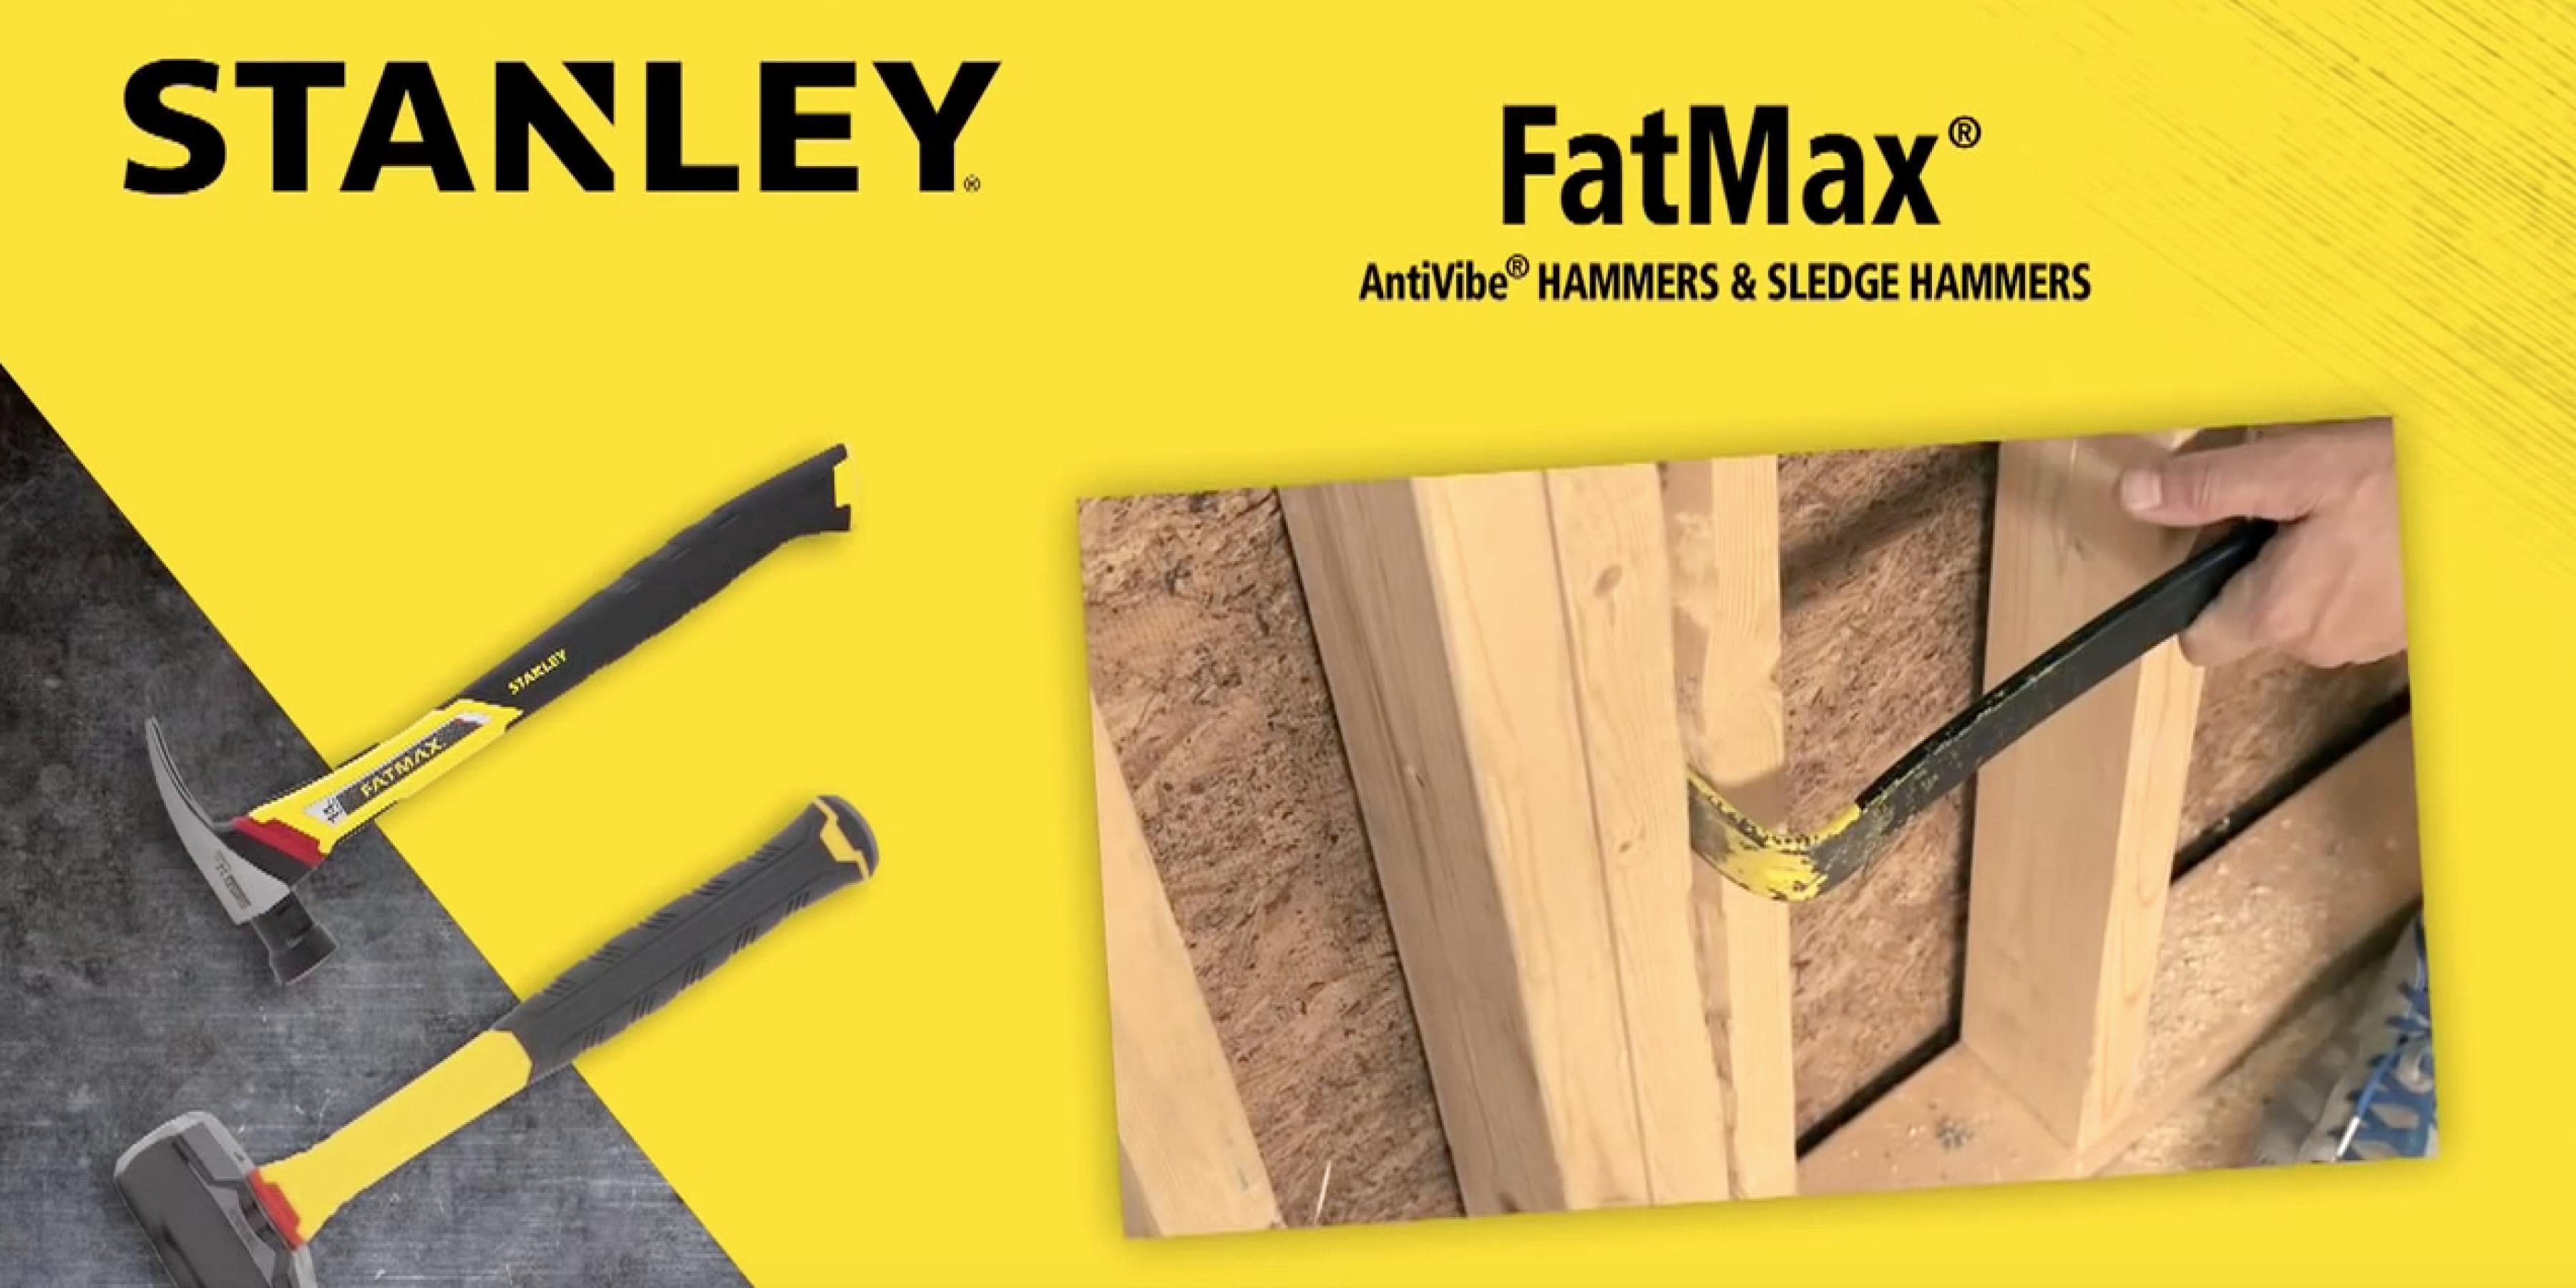 FatMax AntiVibe Hammers and Sledge Hammers -- with AntiVibe® Technology